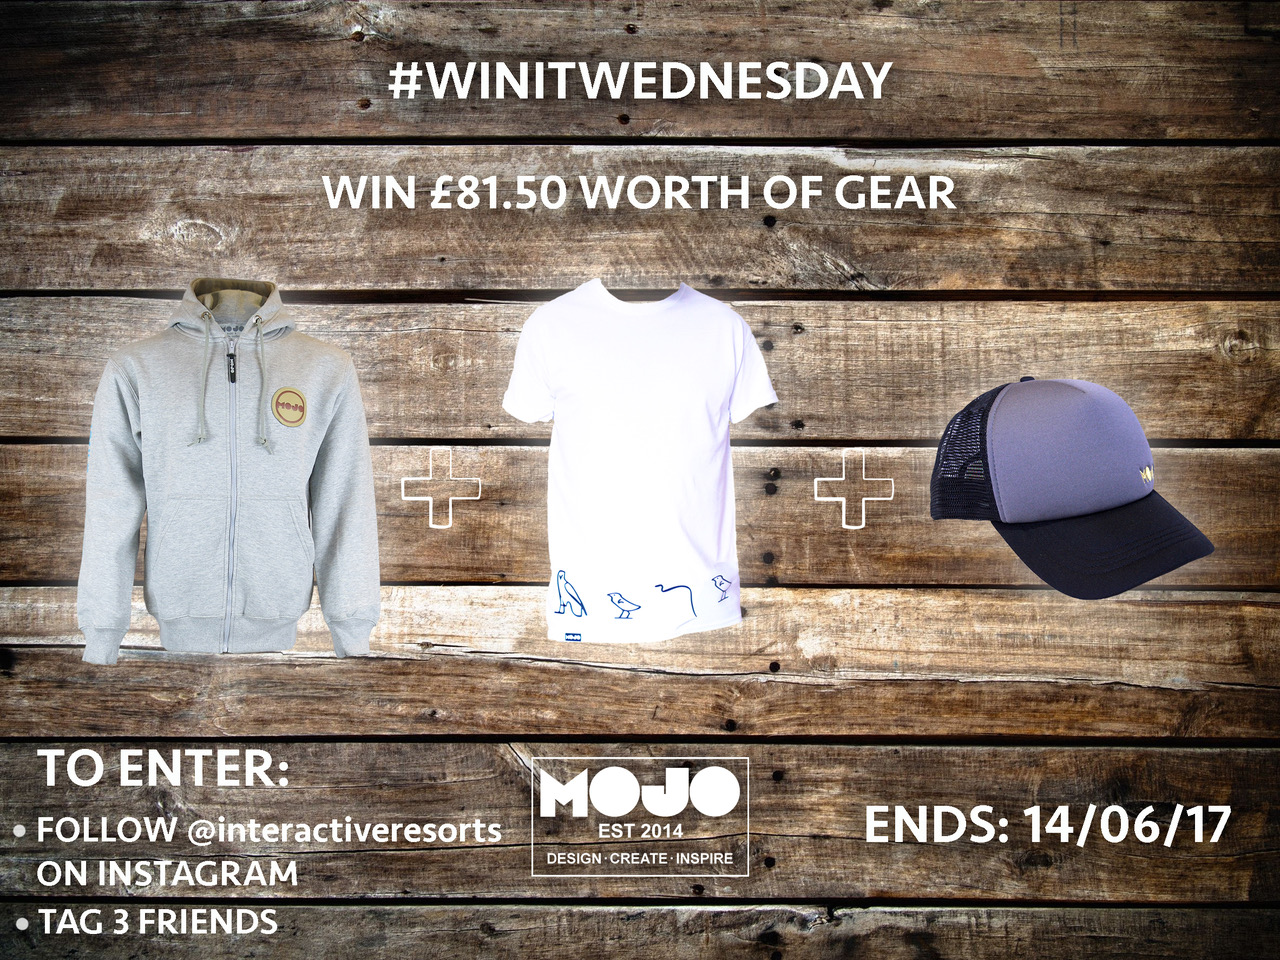 Apres-ski wear, including a hoodie, tee shirt and cap, to be won in Interactive Resort's #WinItWednesday competition